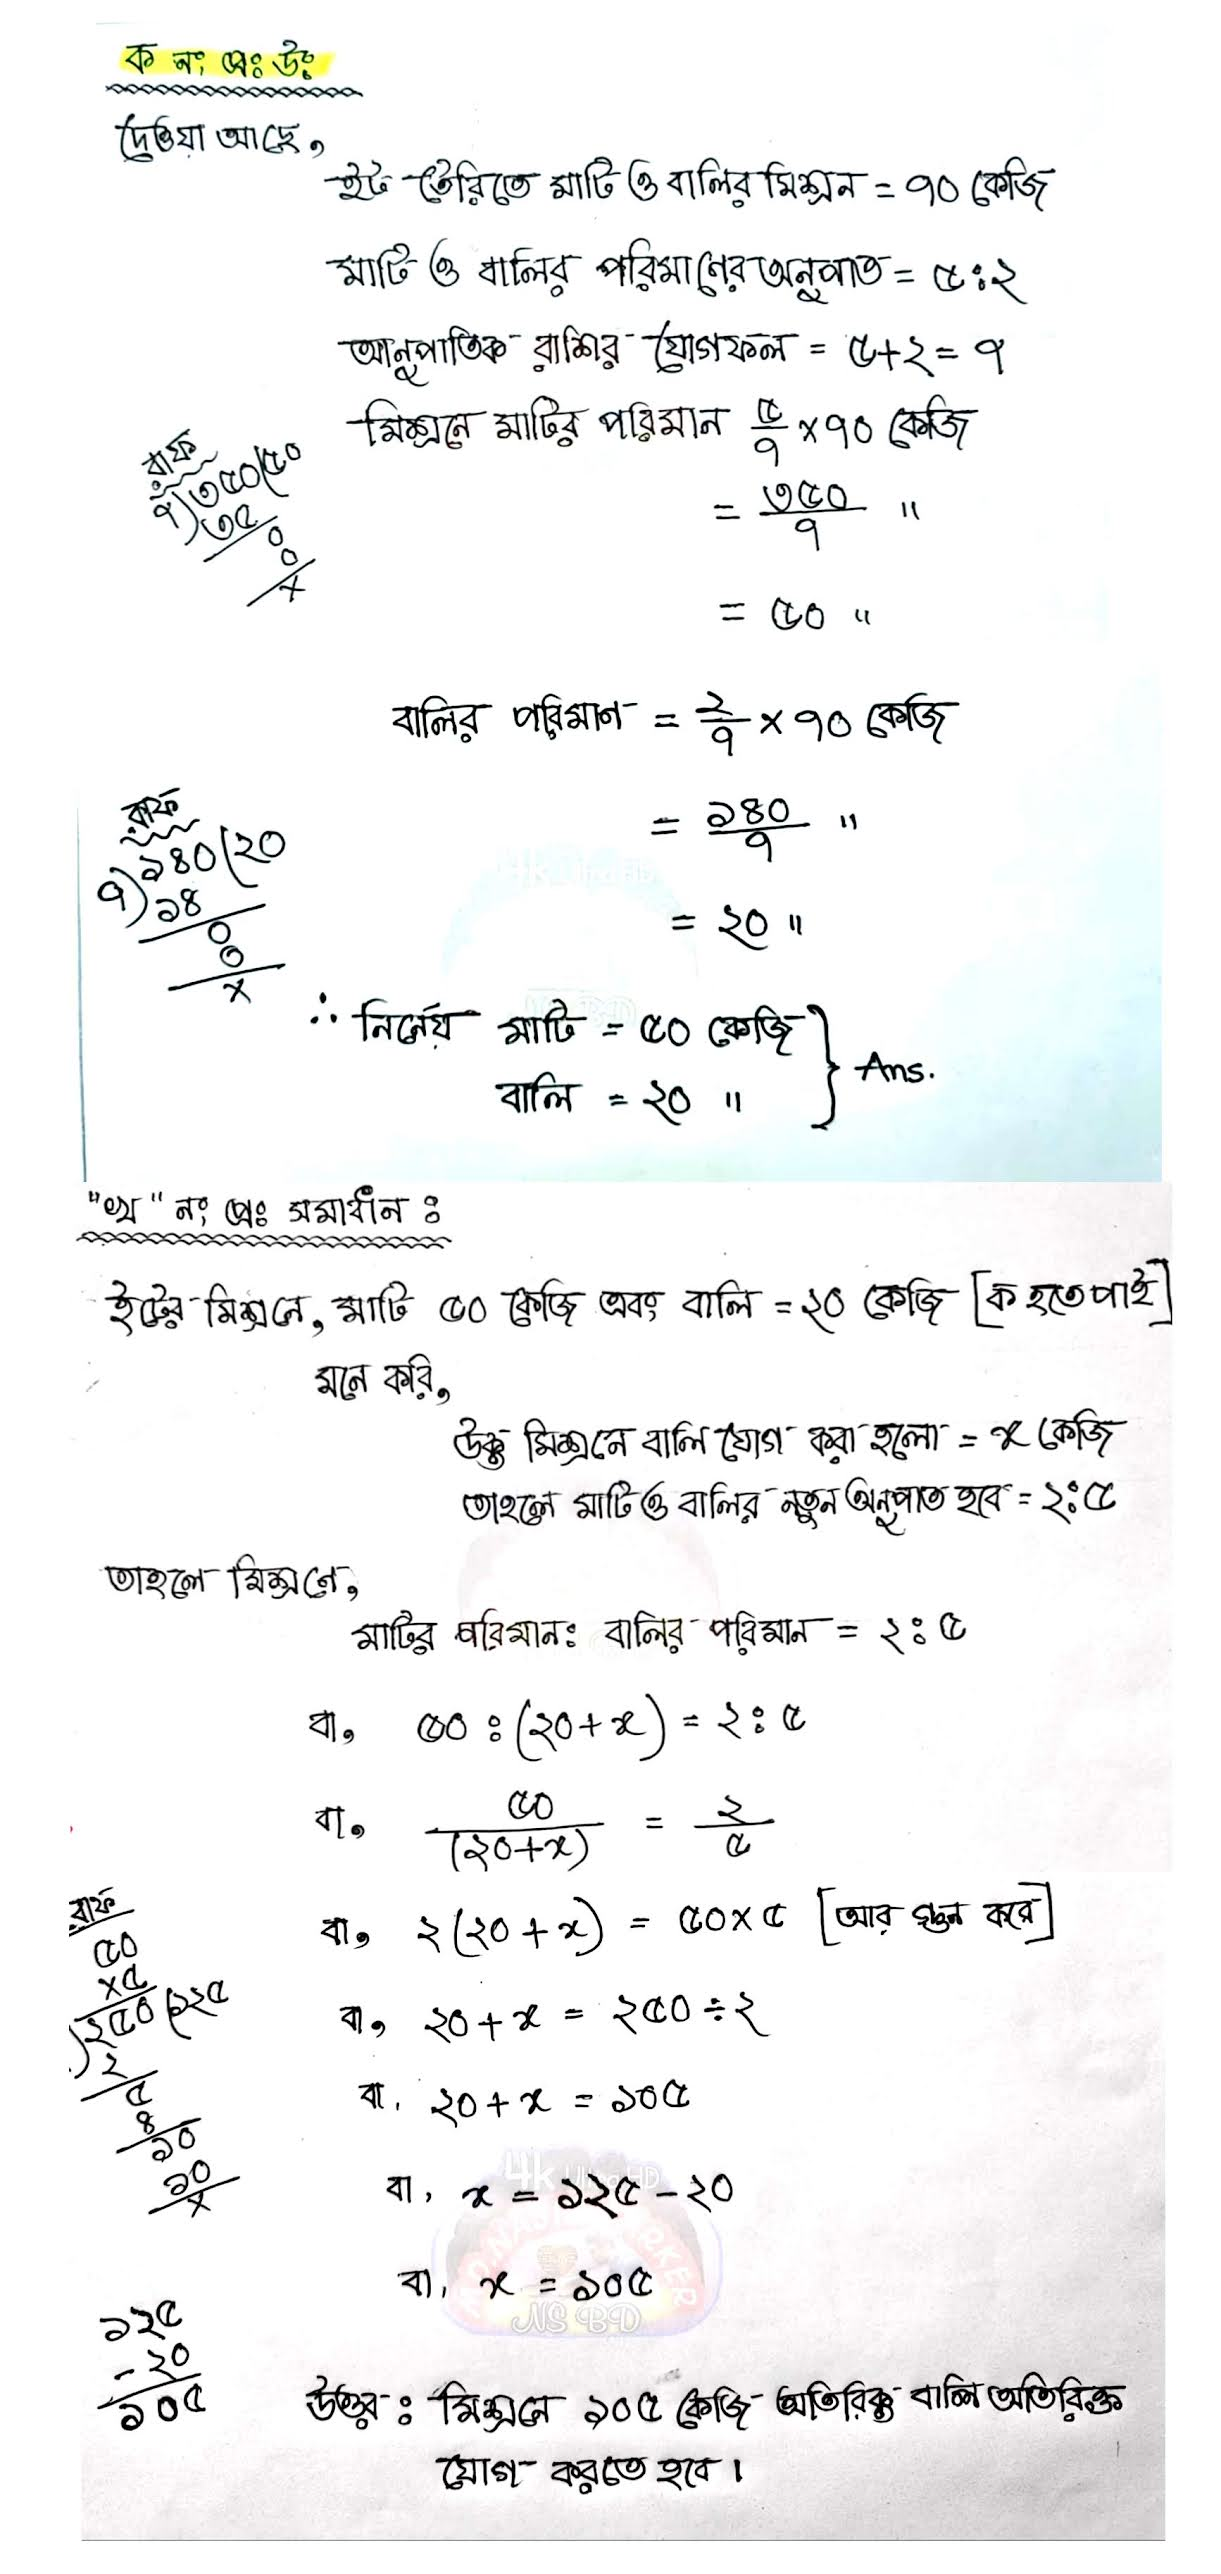 Class 6 18th week Assignment Answer 2021